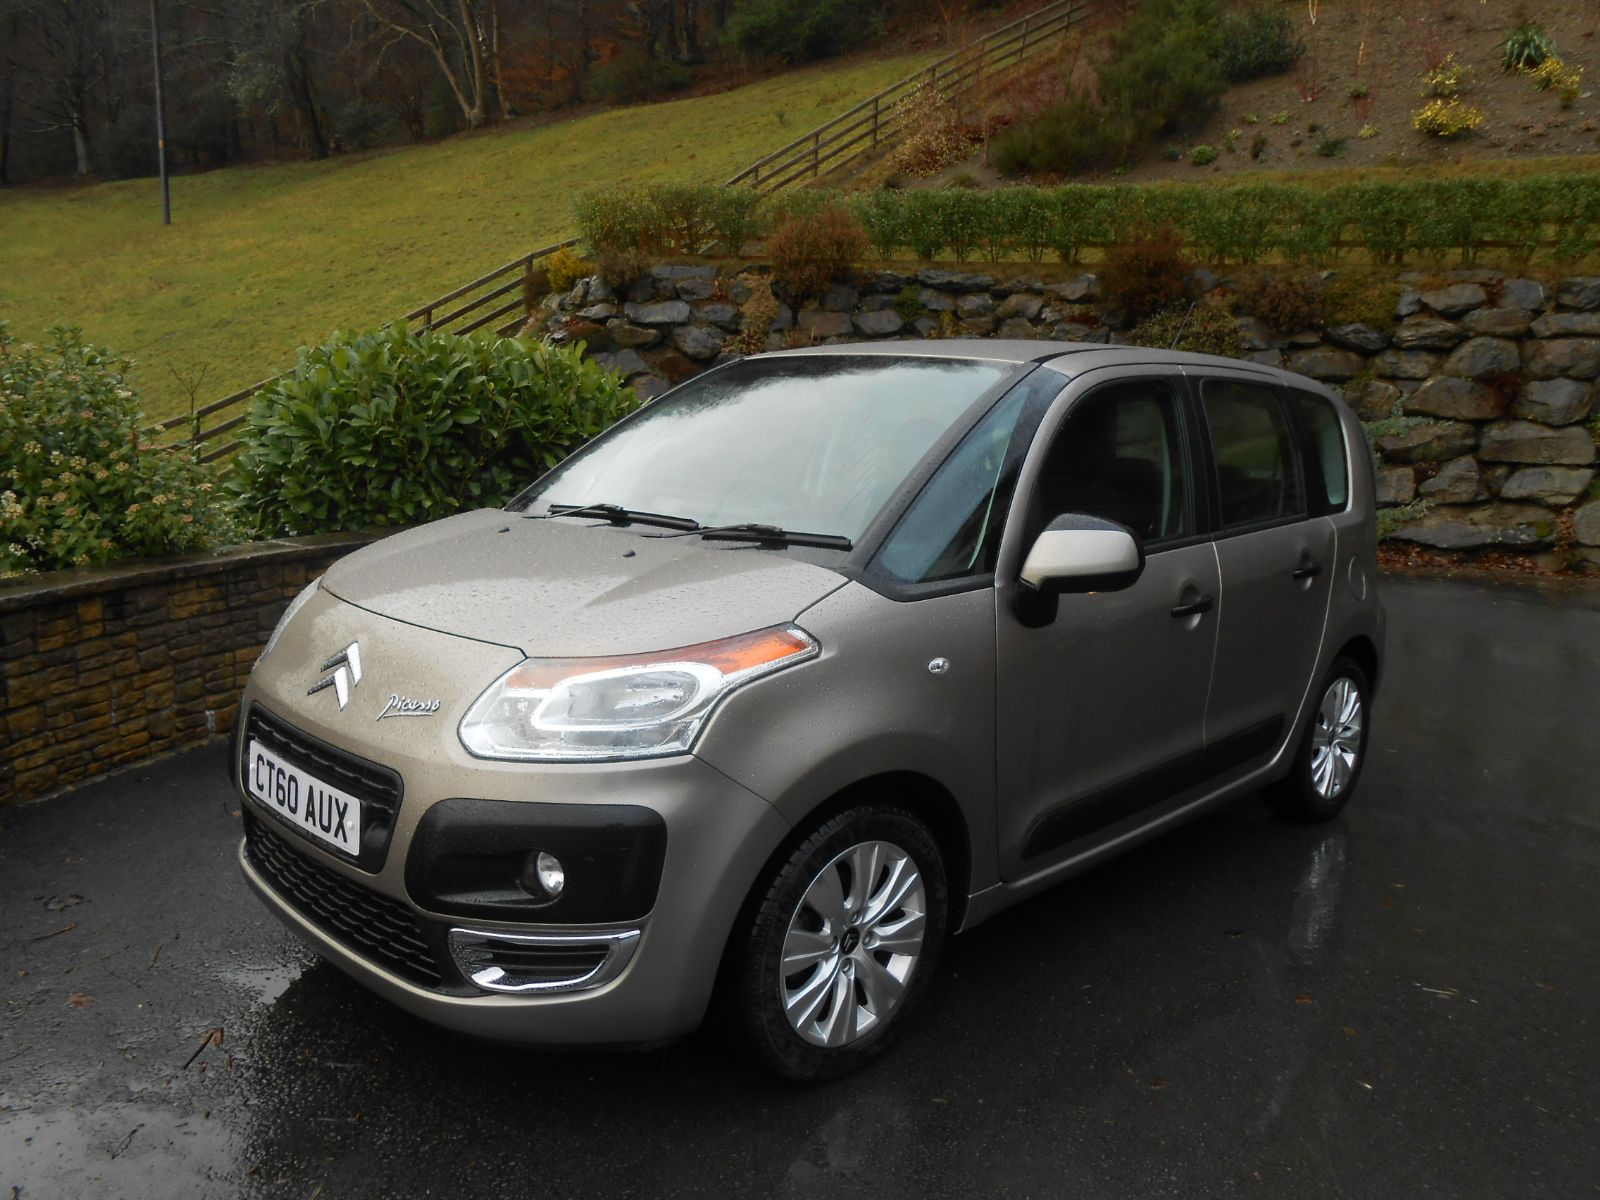 citroen c3 picasso 1 6 hdi airdream car for sale llanidloes powys mid wales kevin jones cars. Black Bedroom Furniture Sets. Home Design Ideas